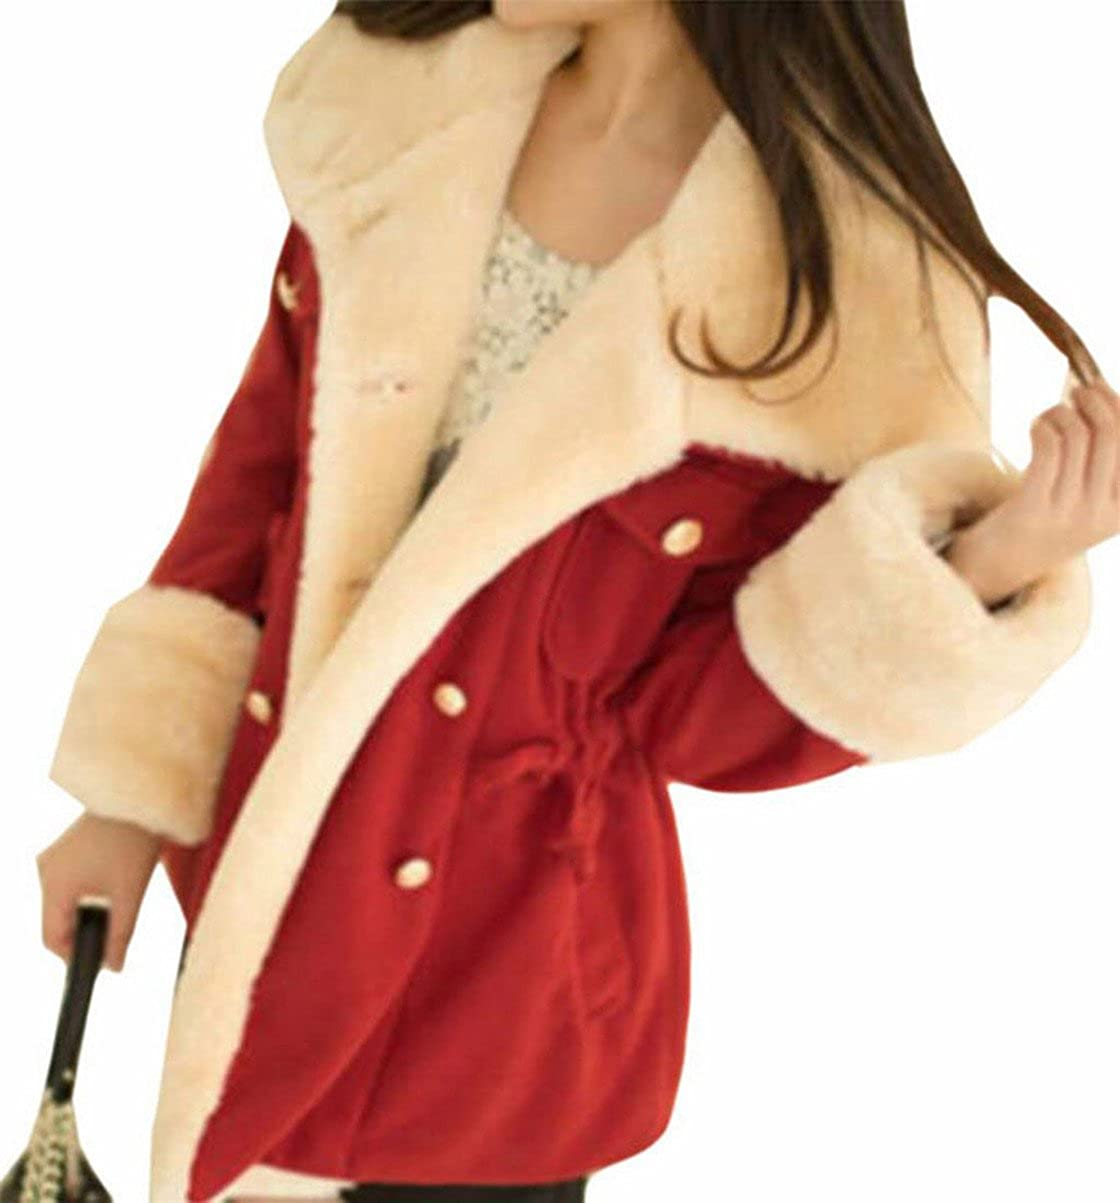 FLCH+YIGE Women's Casual Winter Thicken Plus Size Sherpa Shearling Coat Jacket